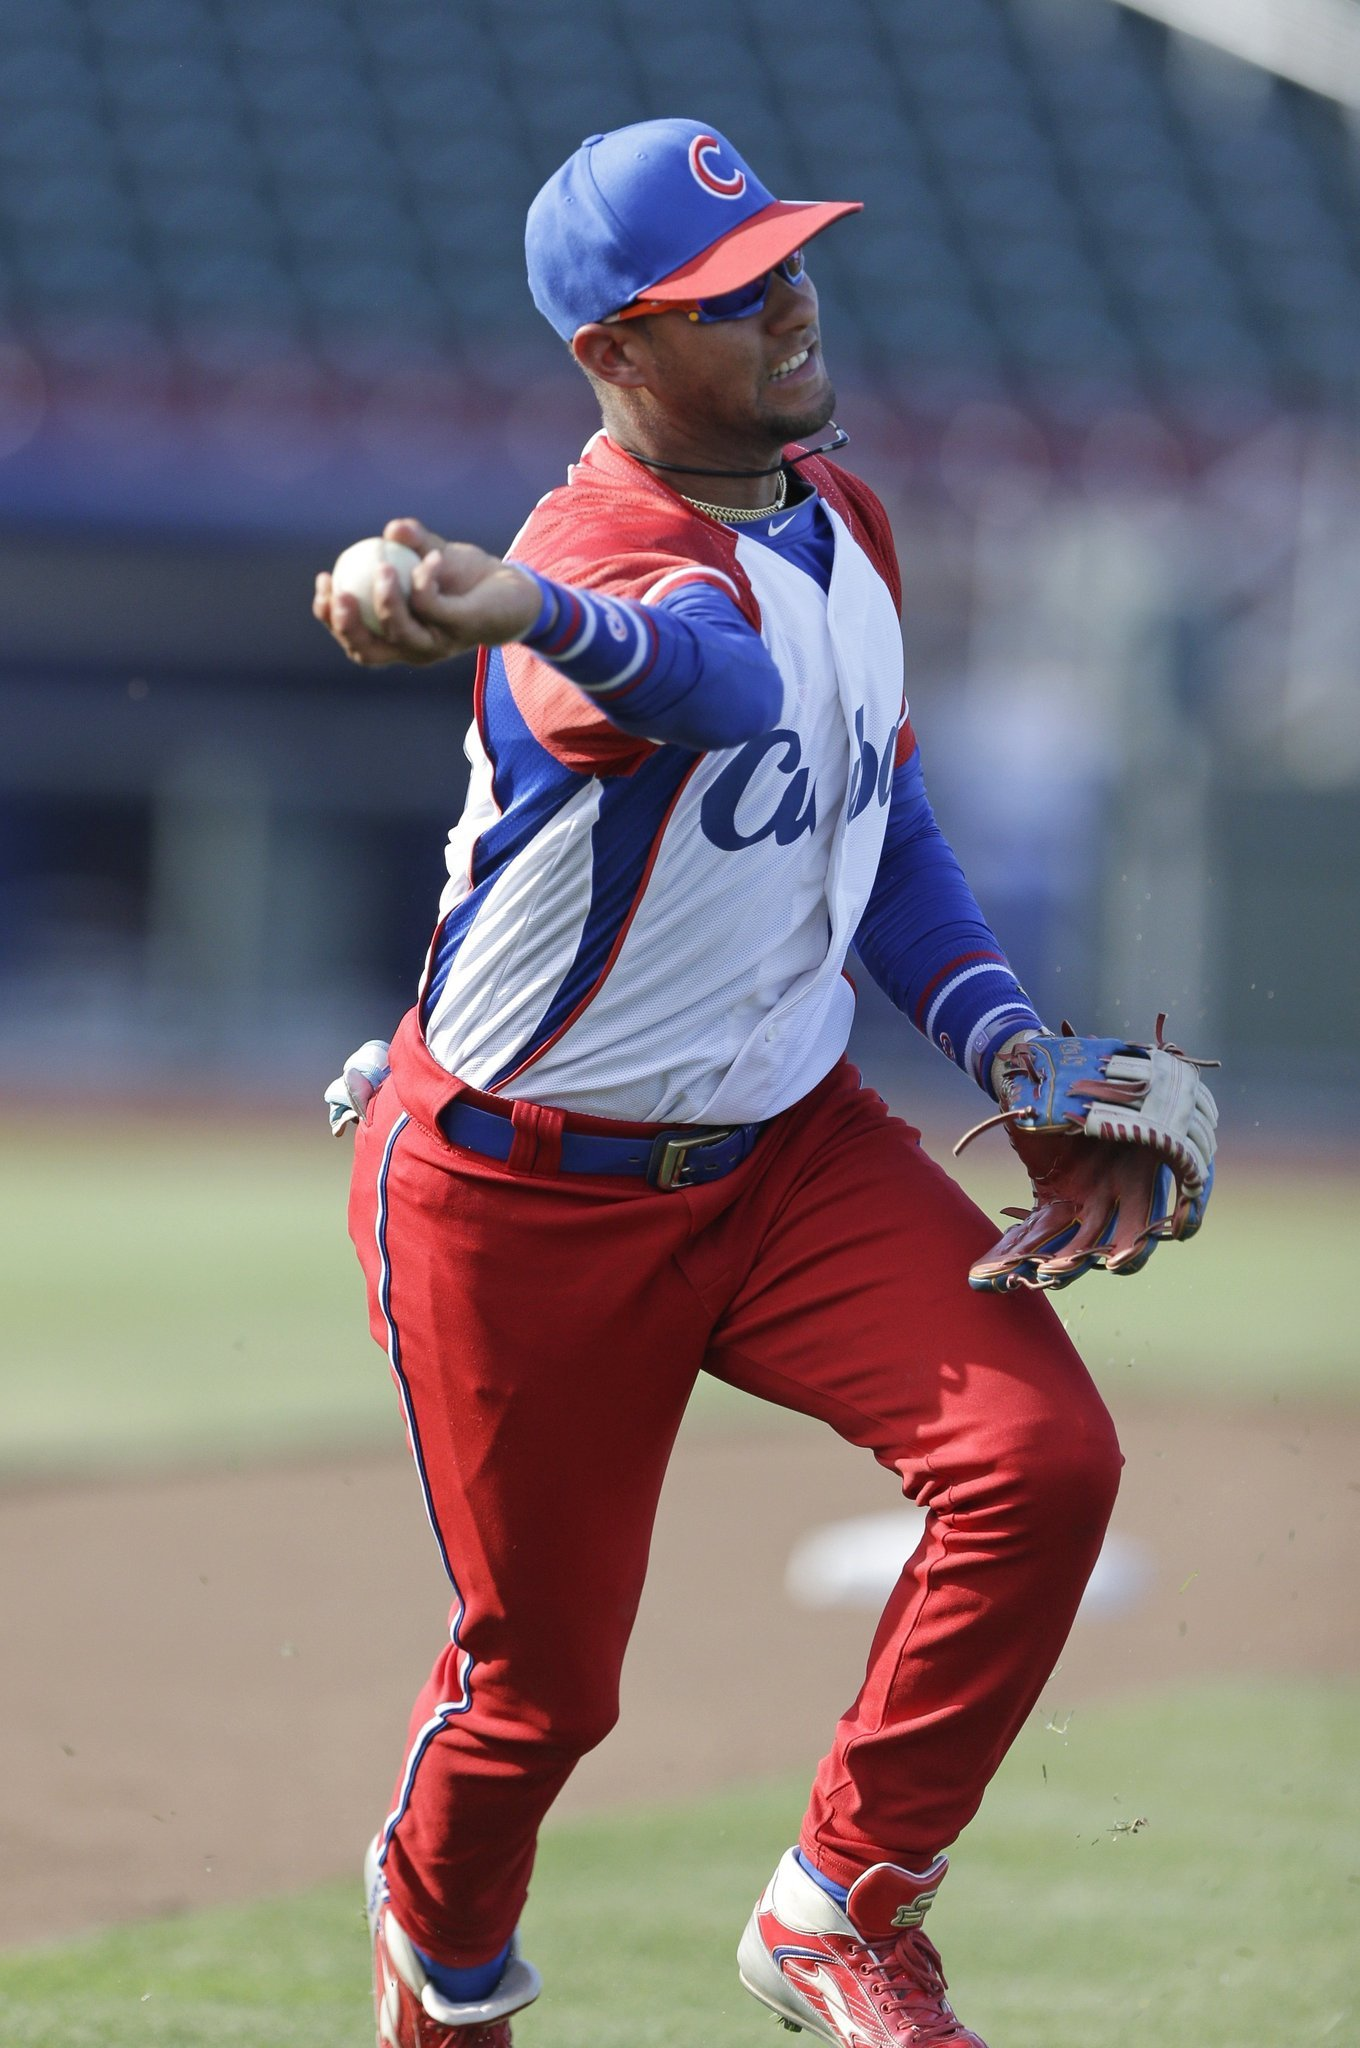 Top Cuban baseball player, brother leave team in Dominican ...